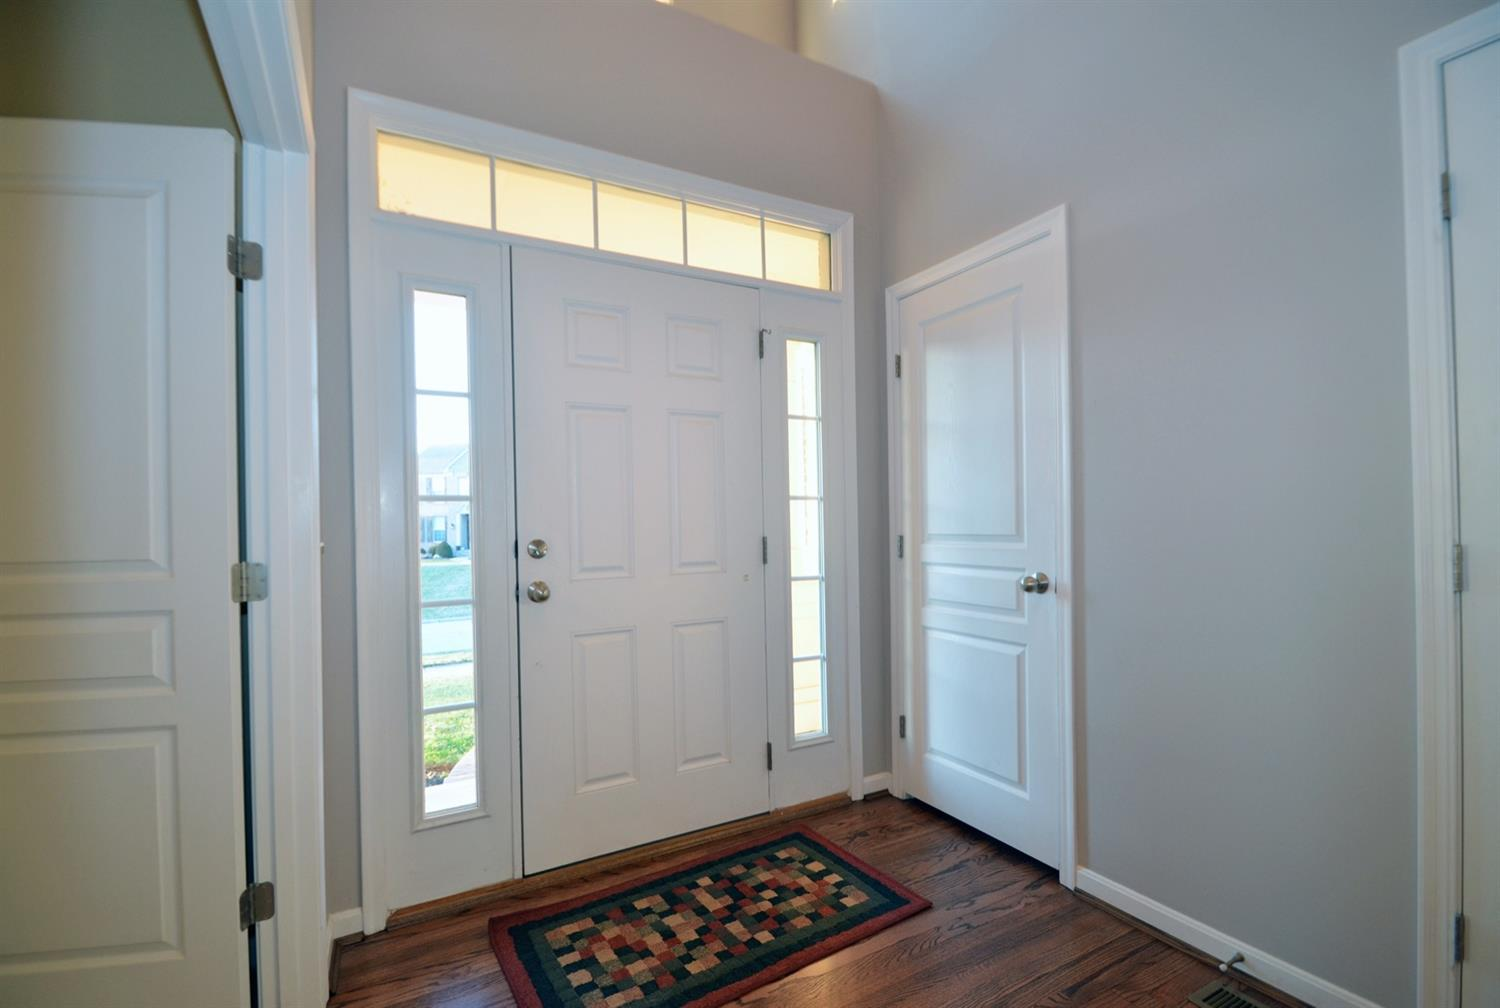 The dramatic and spacious entry features a both a hall closet and a half bath. Additionally the study behind double doors is located directly inside the front door. It's perfect for those working from home or meeting clients.